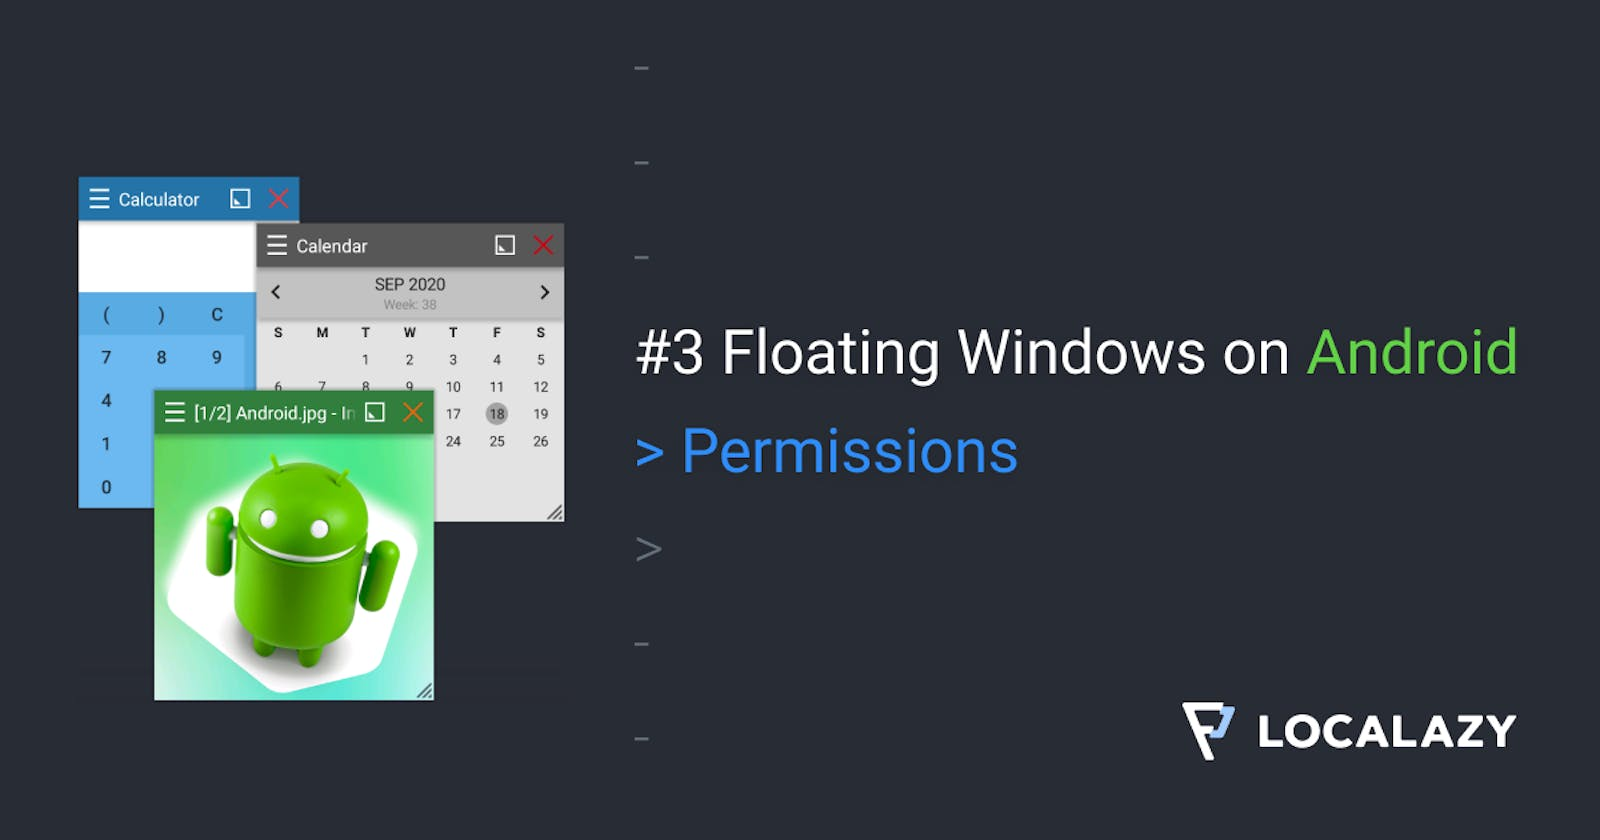 #3 Floating Windows on Android: Permissions